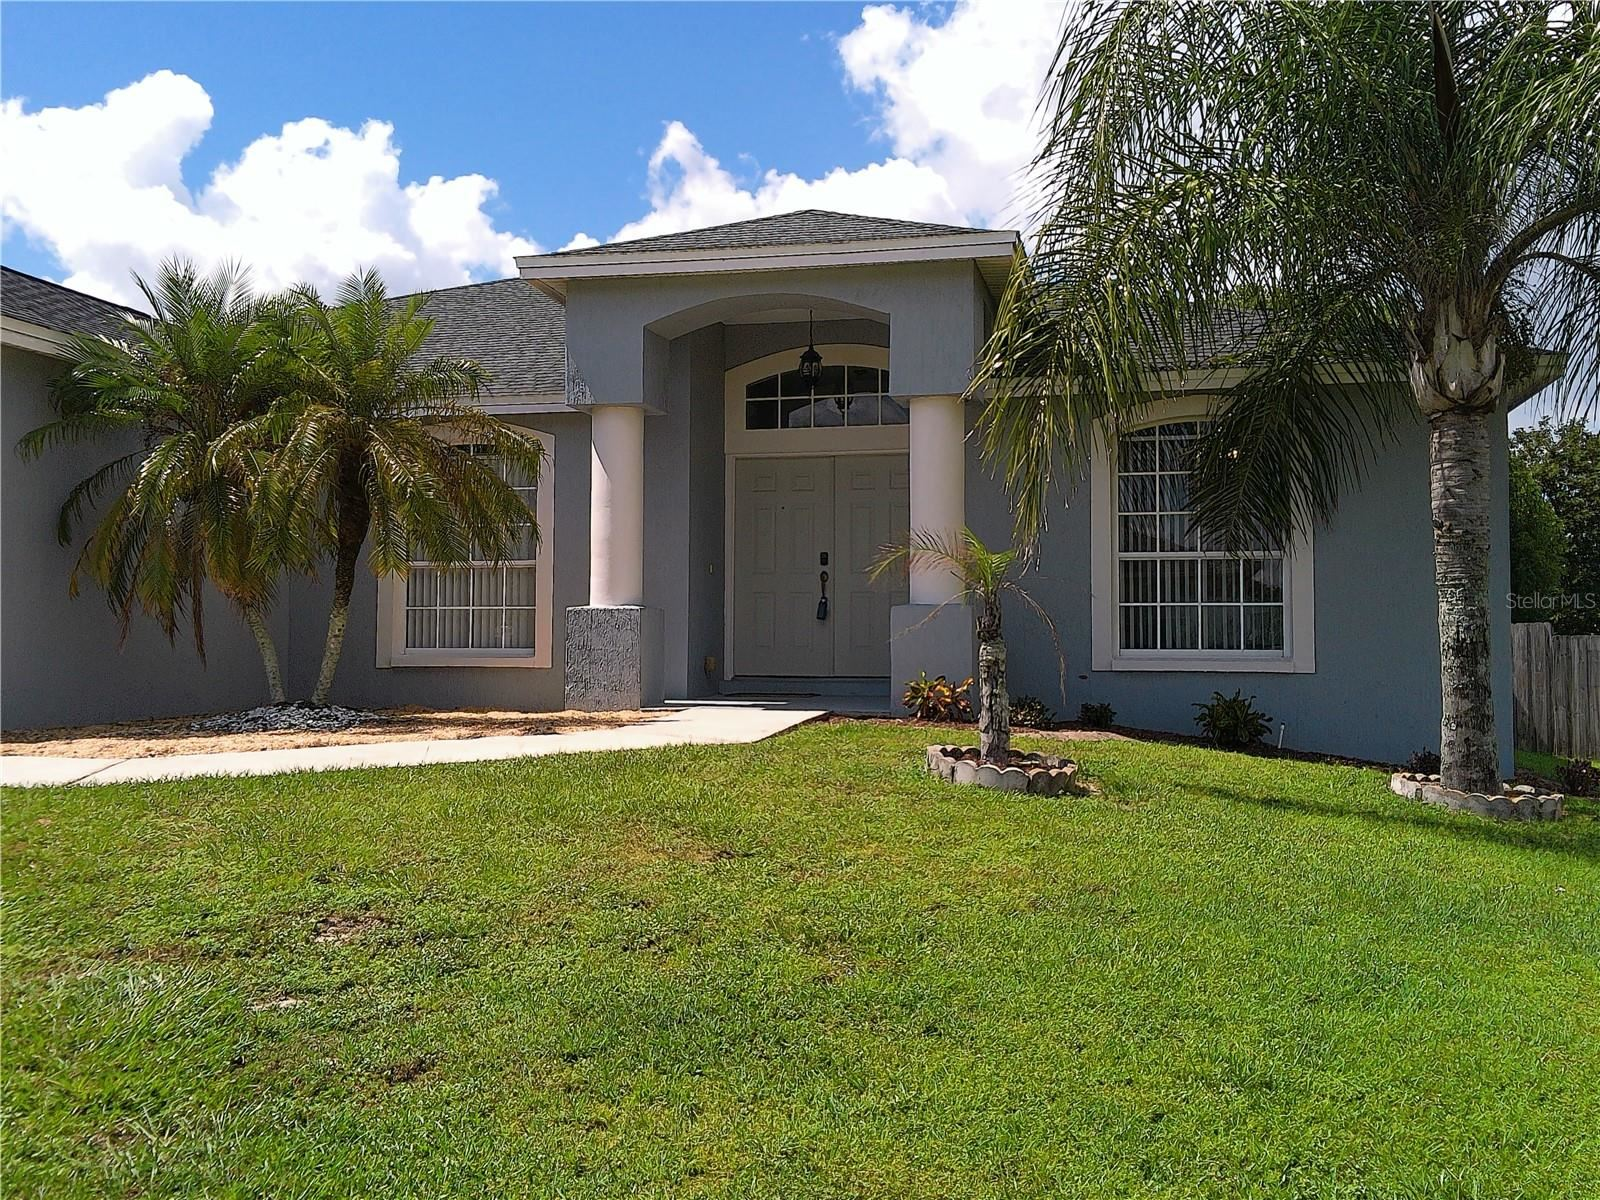 6339 PROMINENCE POINT DRIVE, Lakeland, FL 33813 - #: S5056419